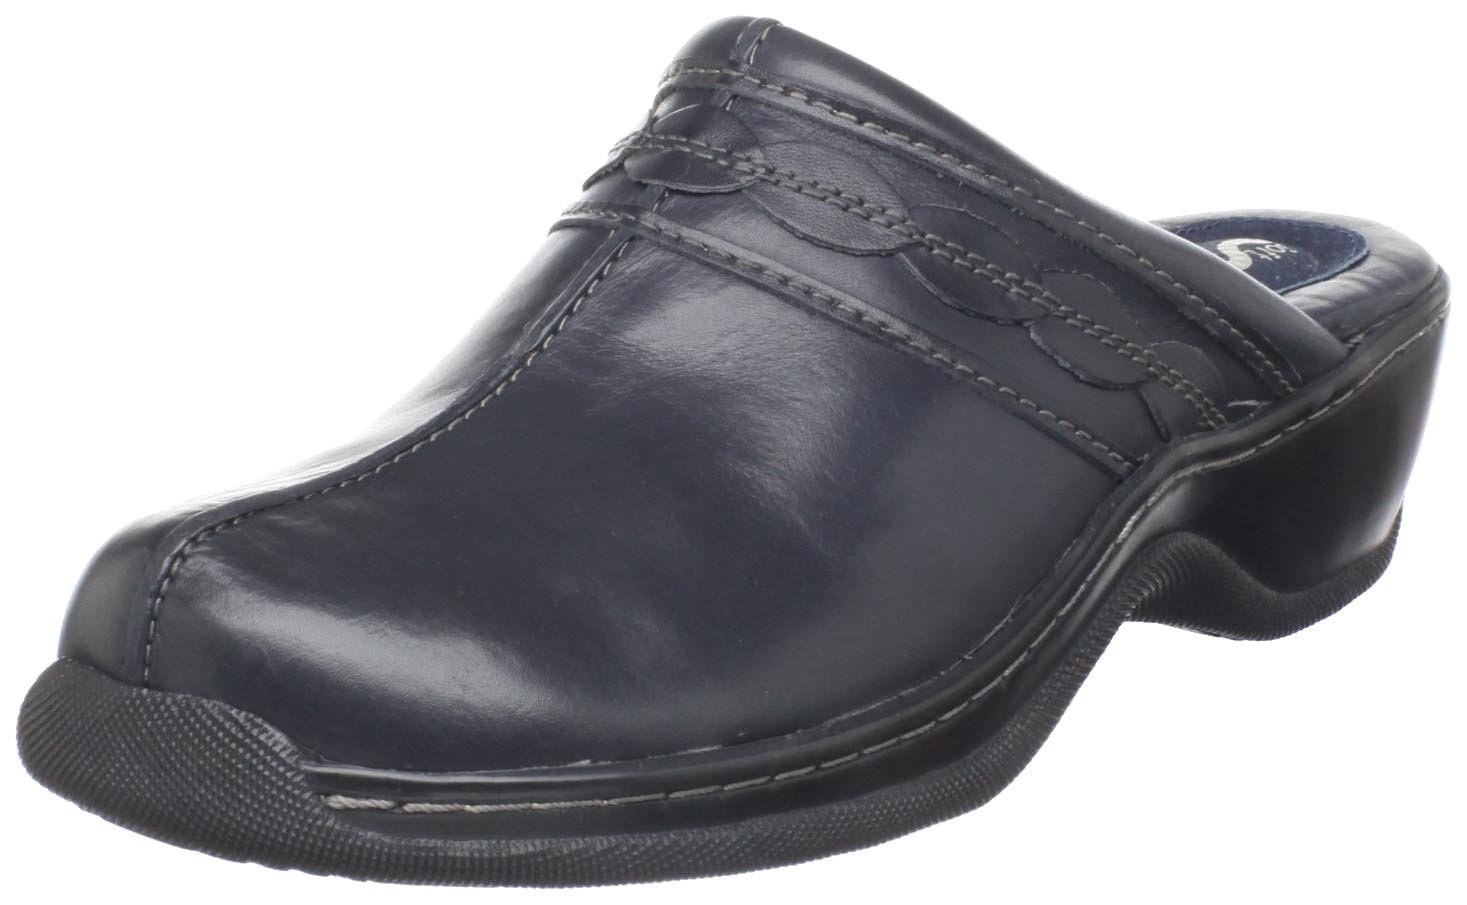 SoftWalk Women's Abby Clog B004QFULZ4 10 B(M) US|Navy